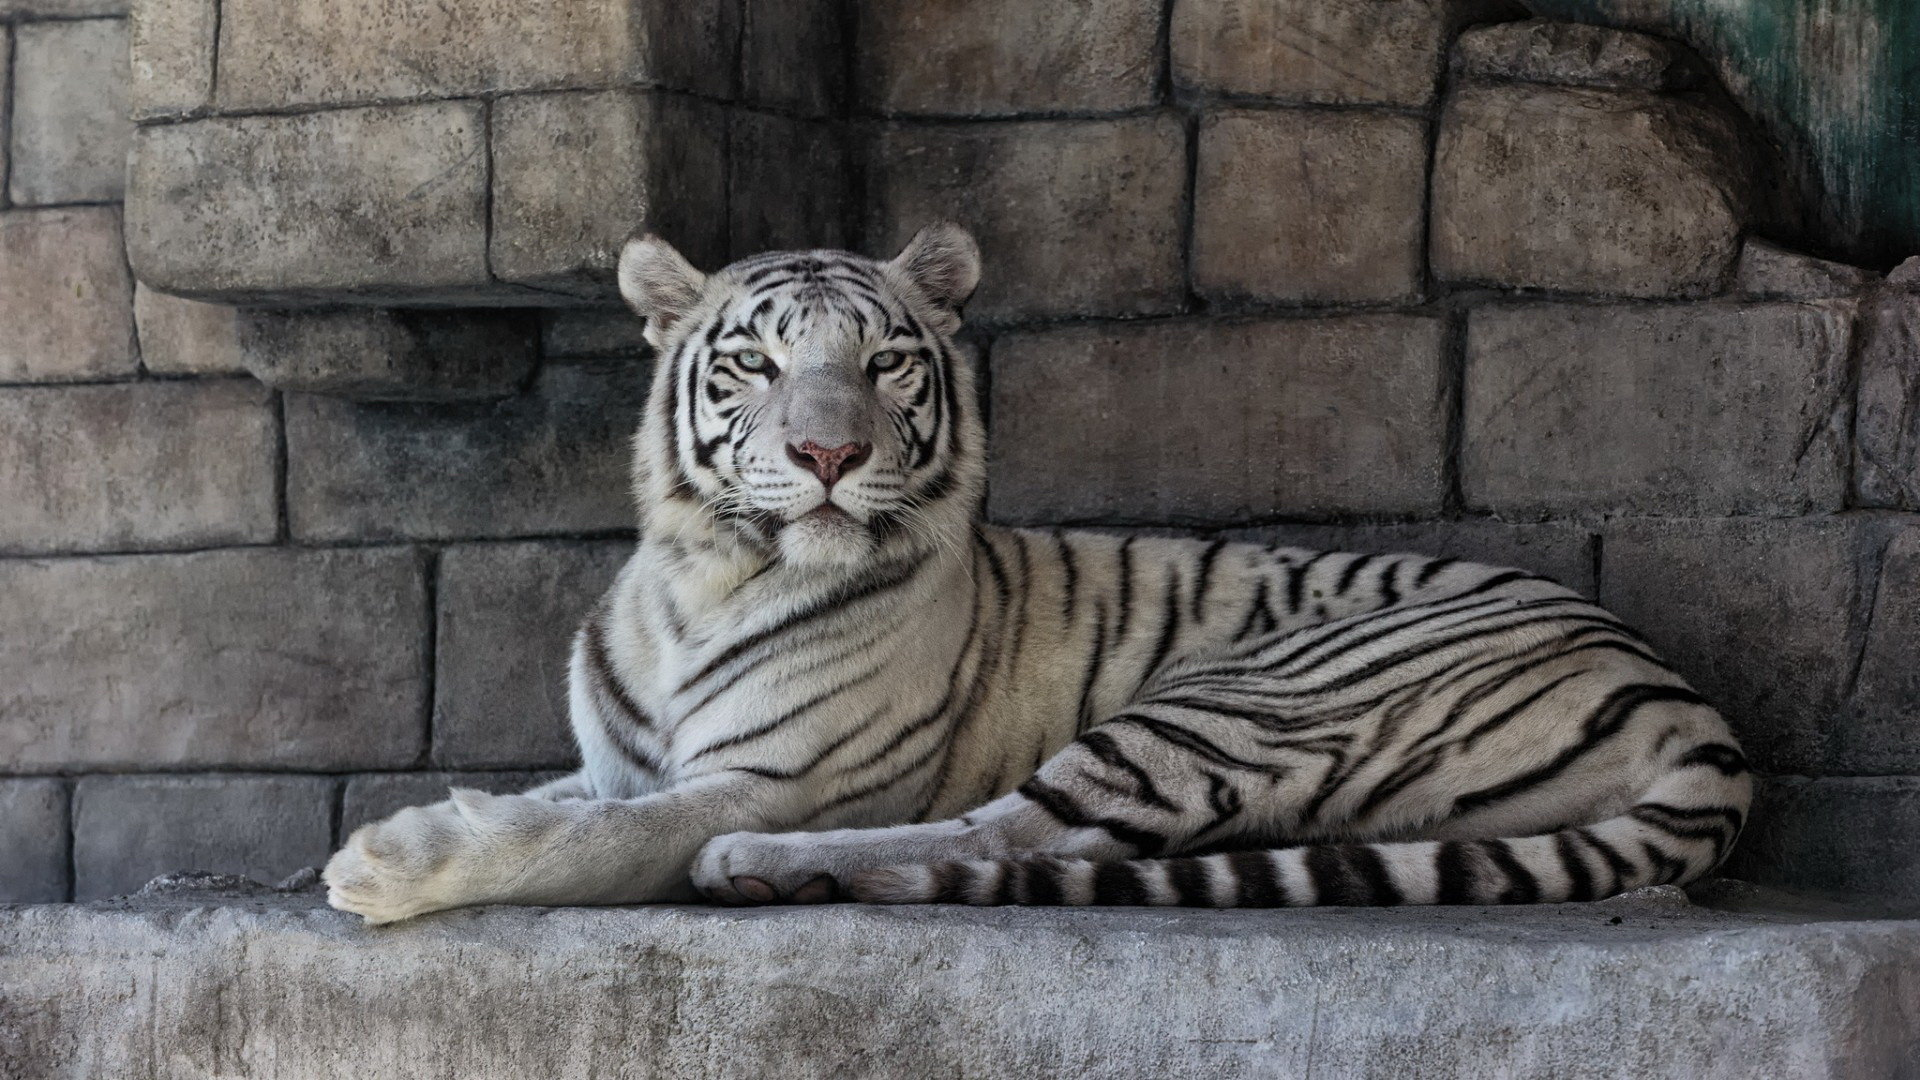 Download full hd White Tiger PC wallpaper ID:174867 for free